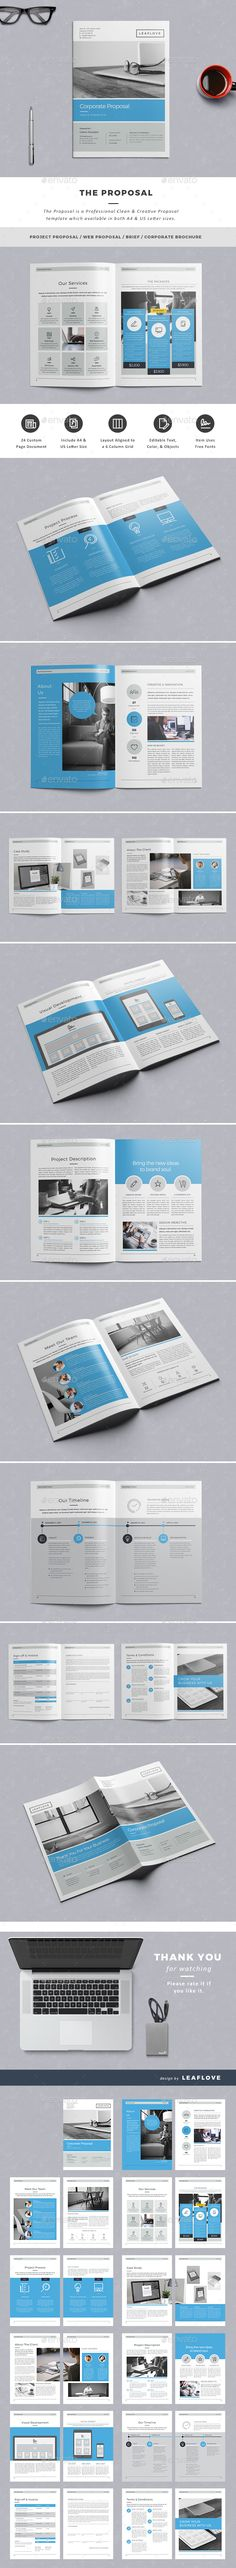 Proposal Proposals, Adobe indesign and Brochure template - proposal layouts